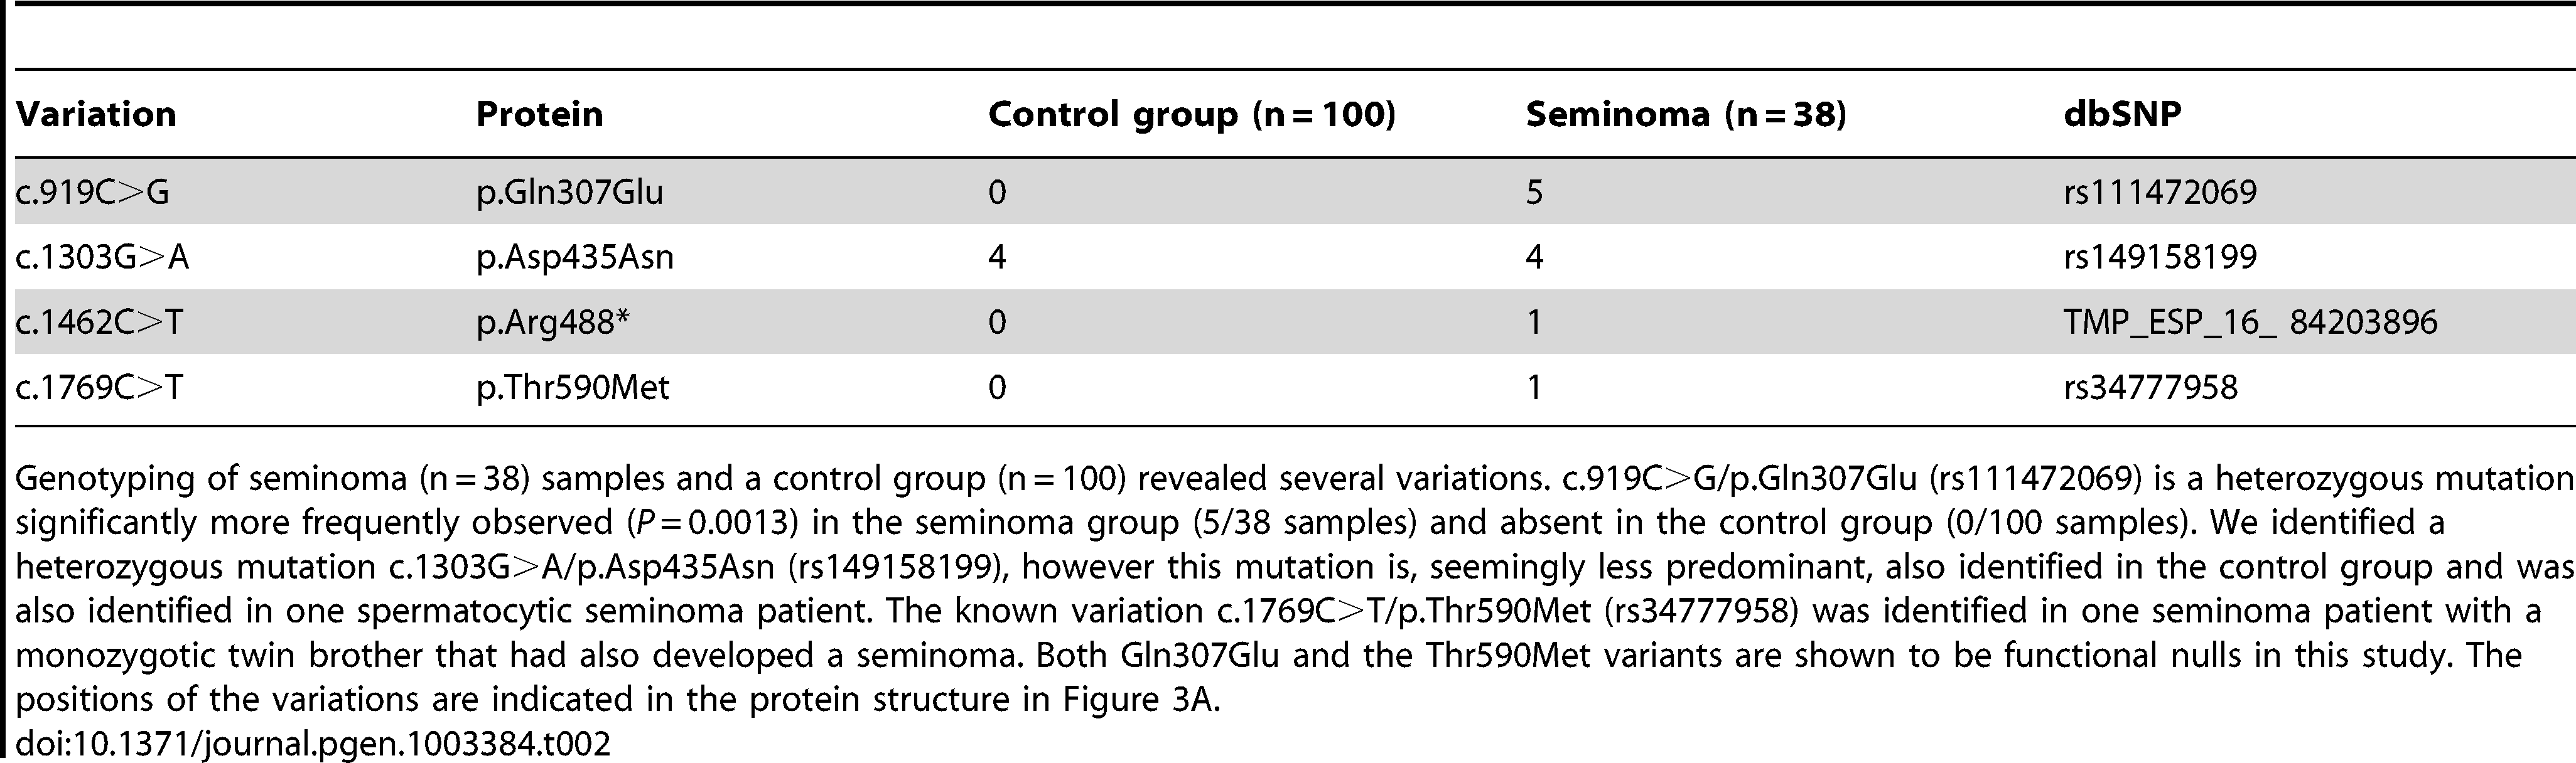 Genetic variation of <i>LRRC50</i> in human seminomas.